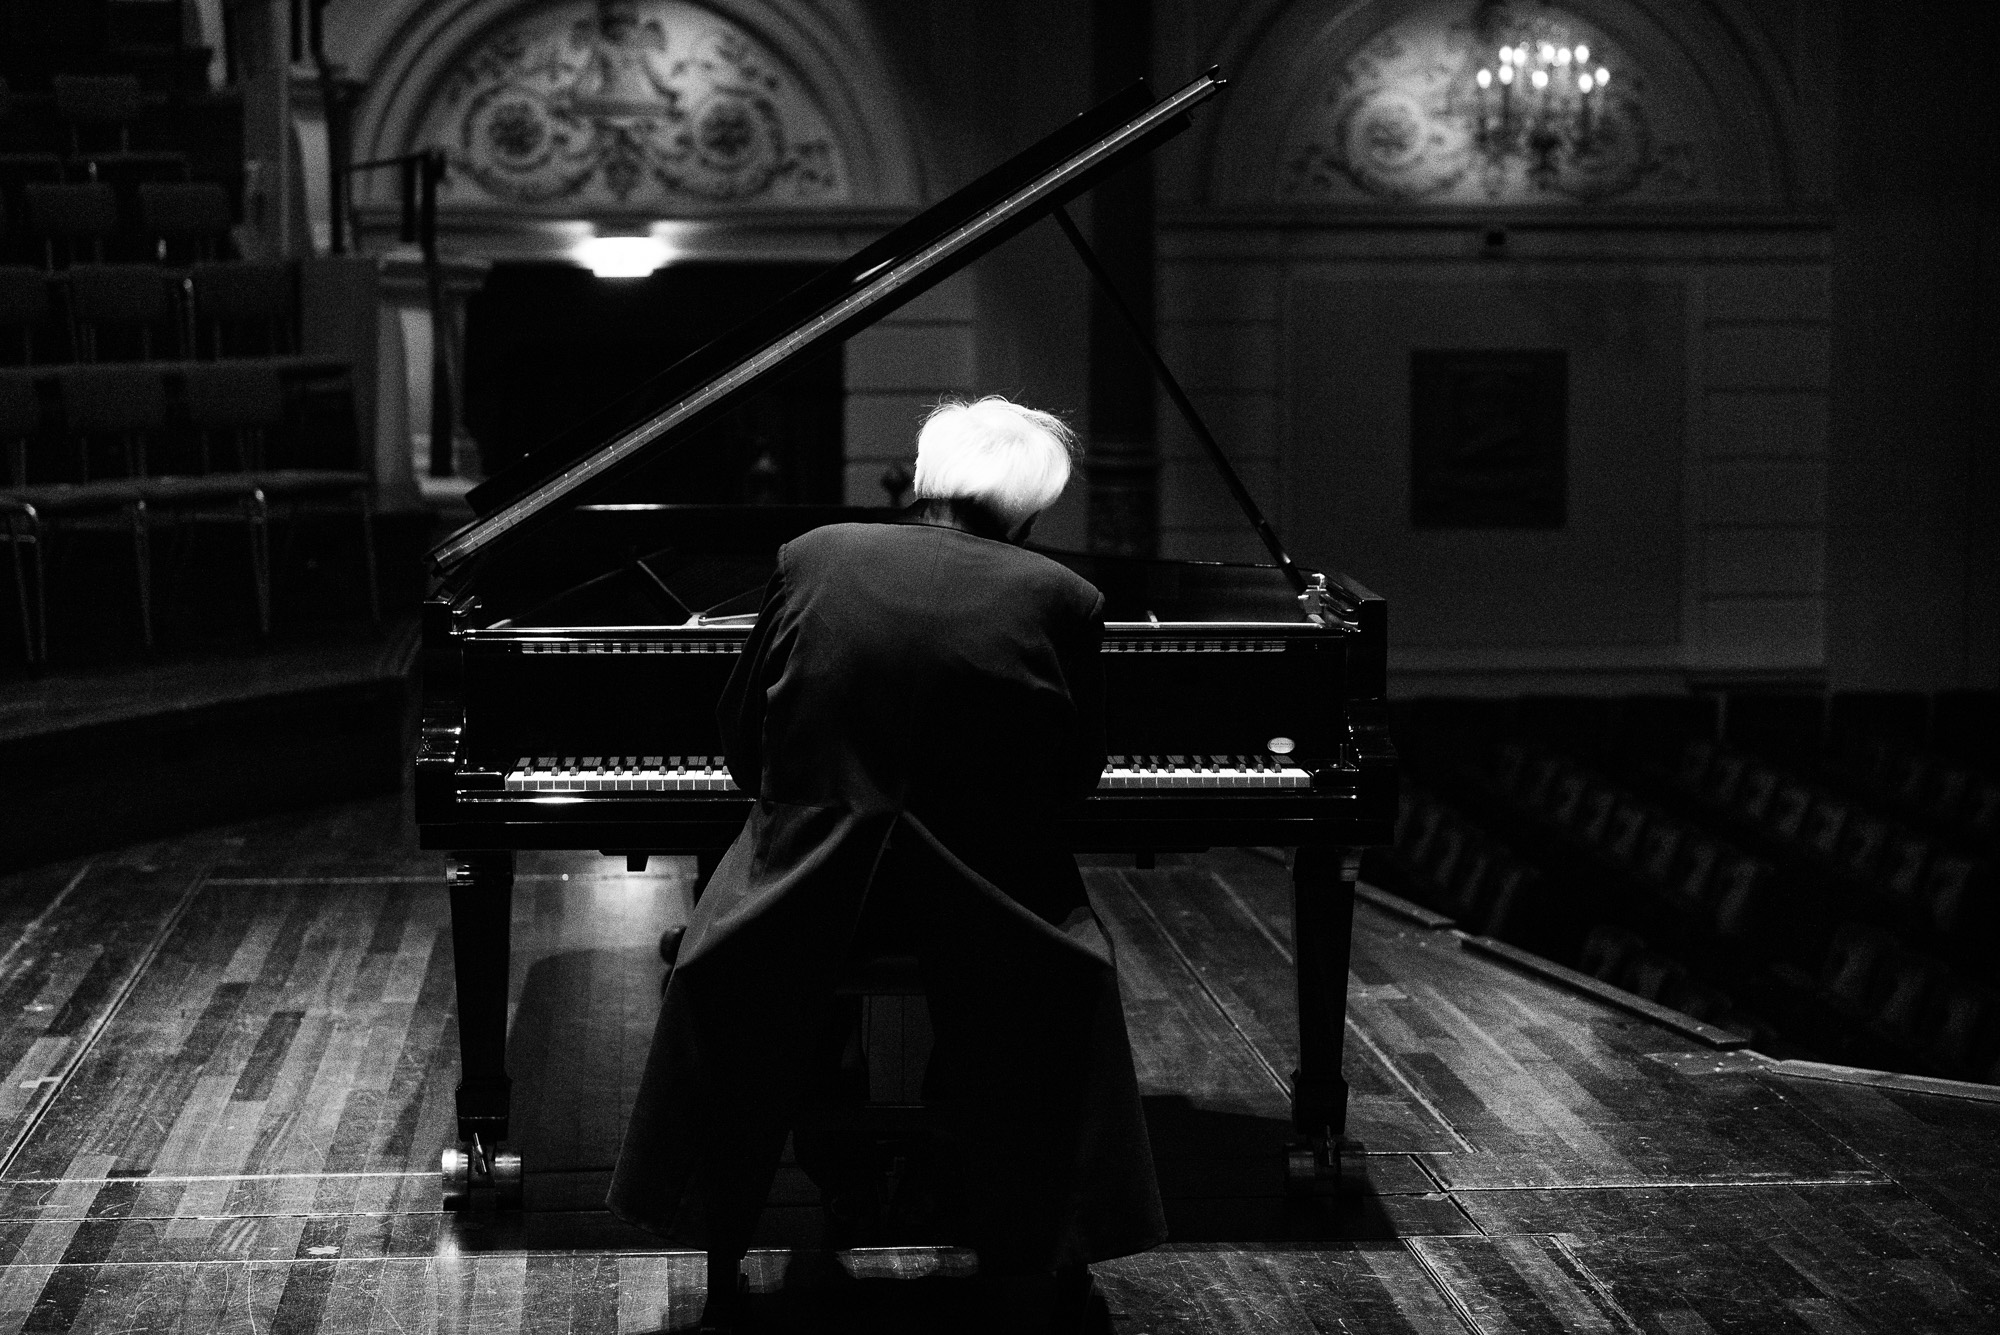 'The greatest living pianist', Grigory Sokolov